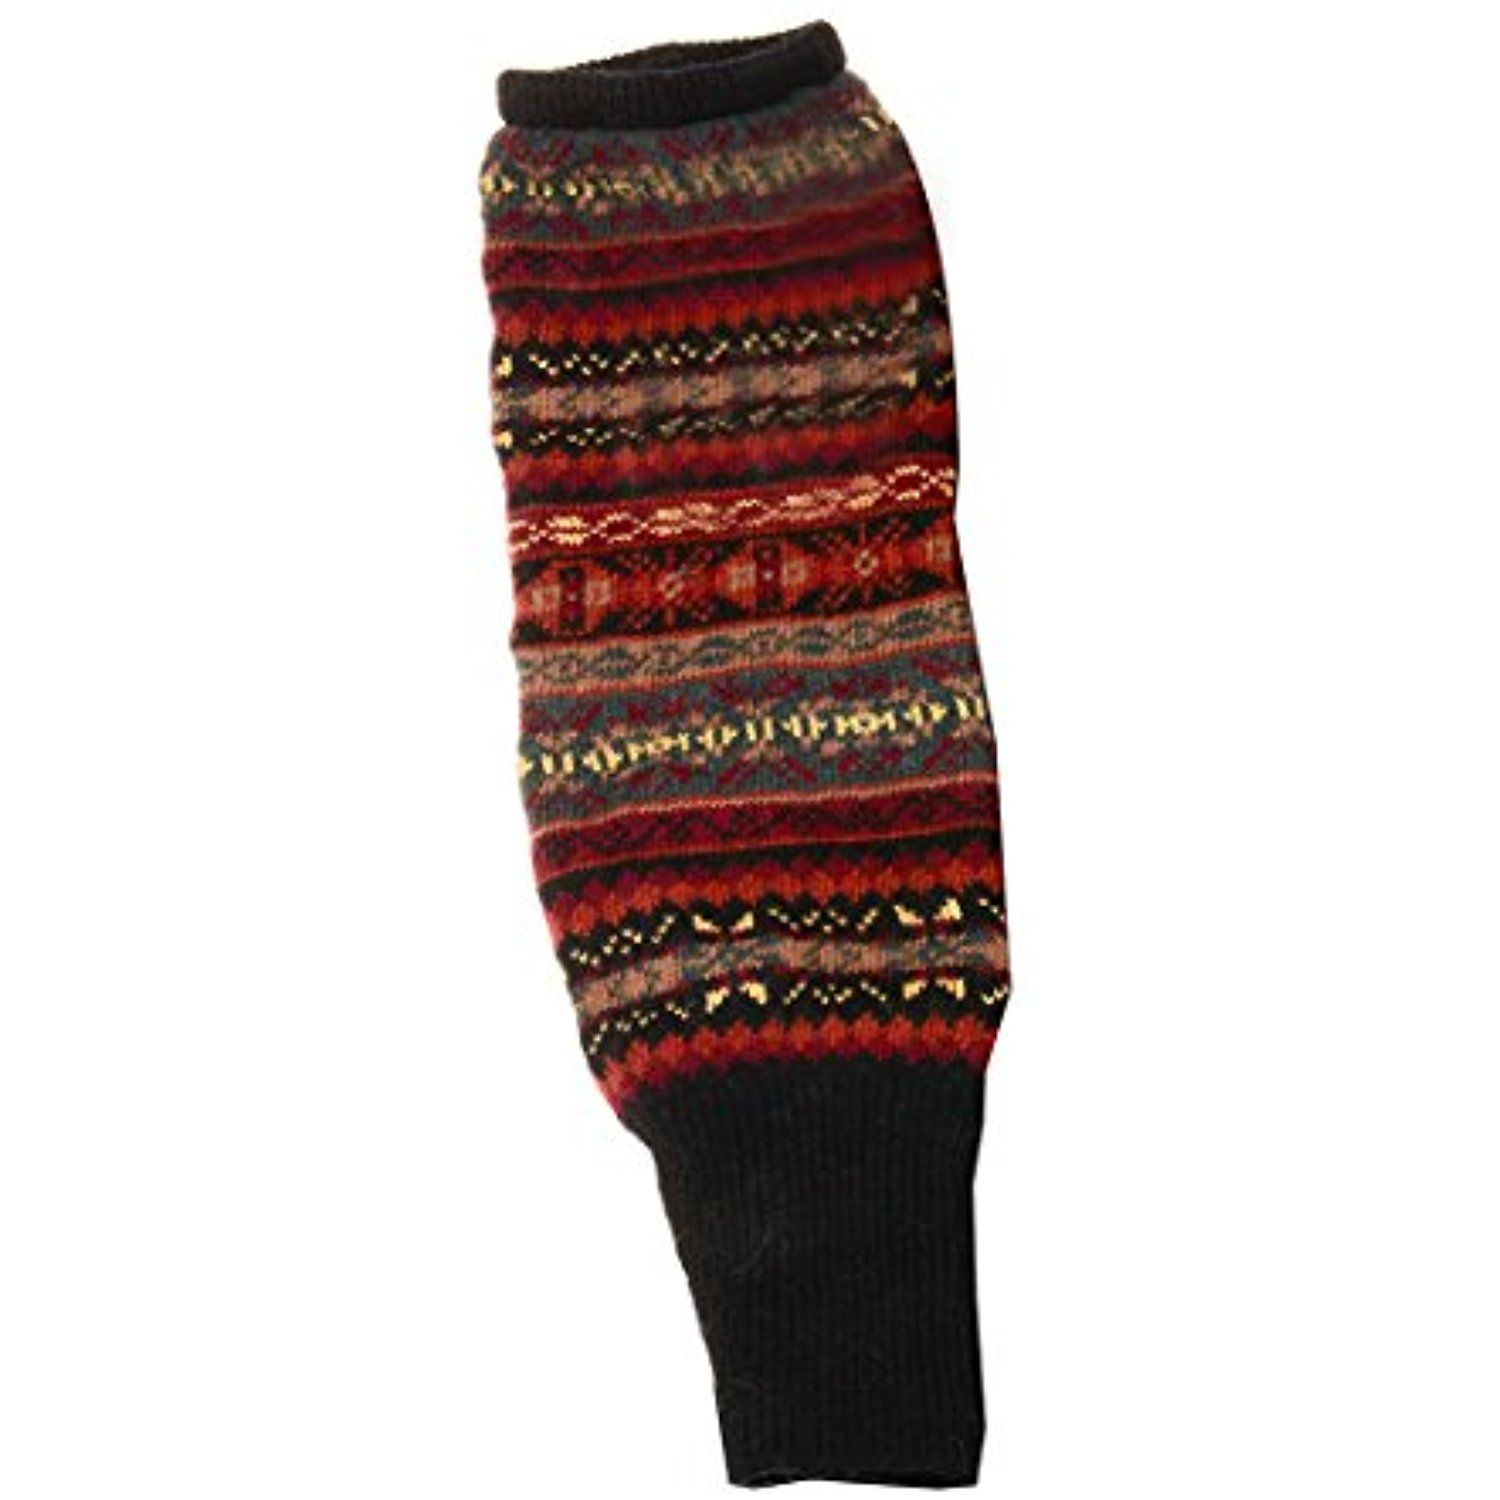 (TM) Women's Tigh-High Knit Crochet Leg Warmers >>> For more information, visit image link. (This is an affiliate link) #Clothing